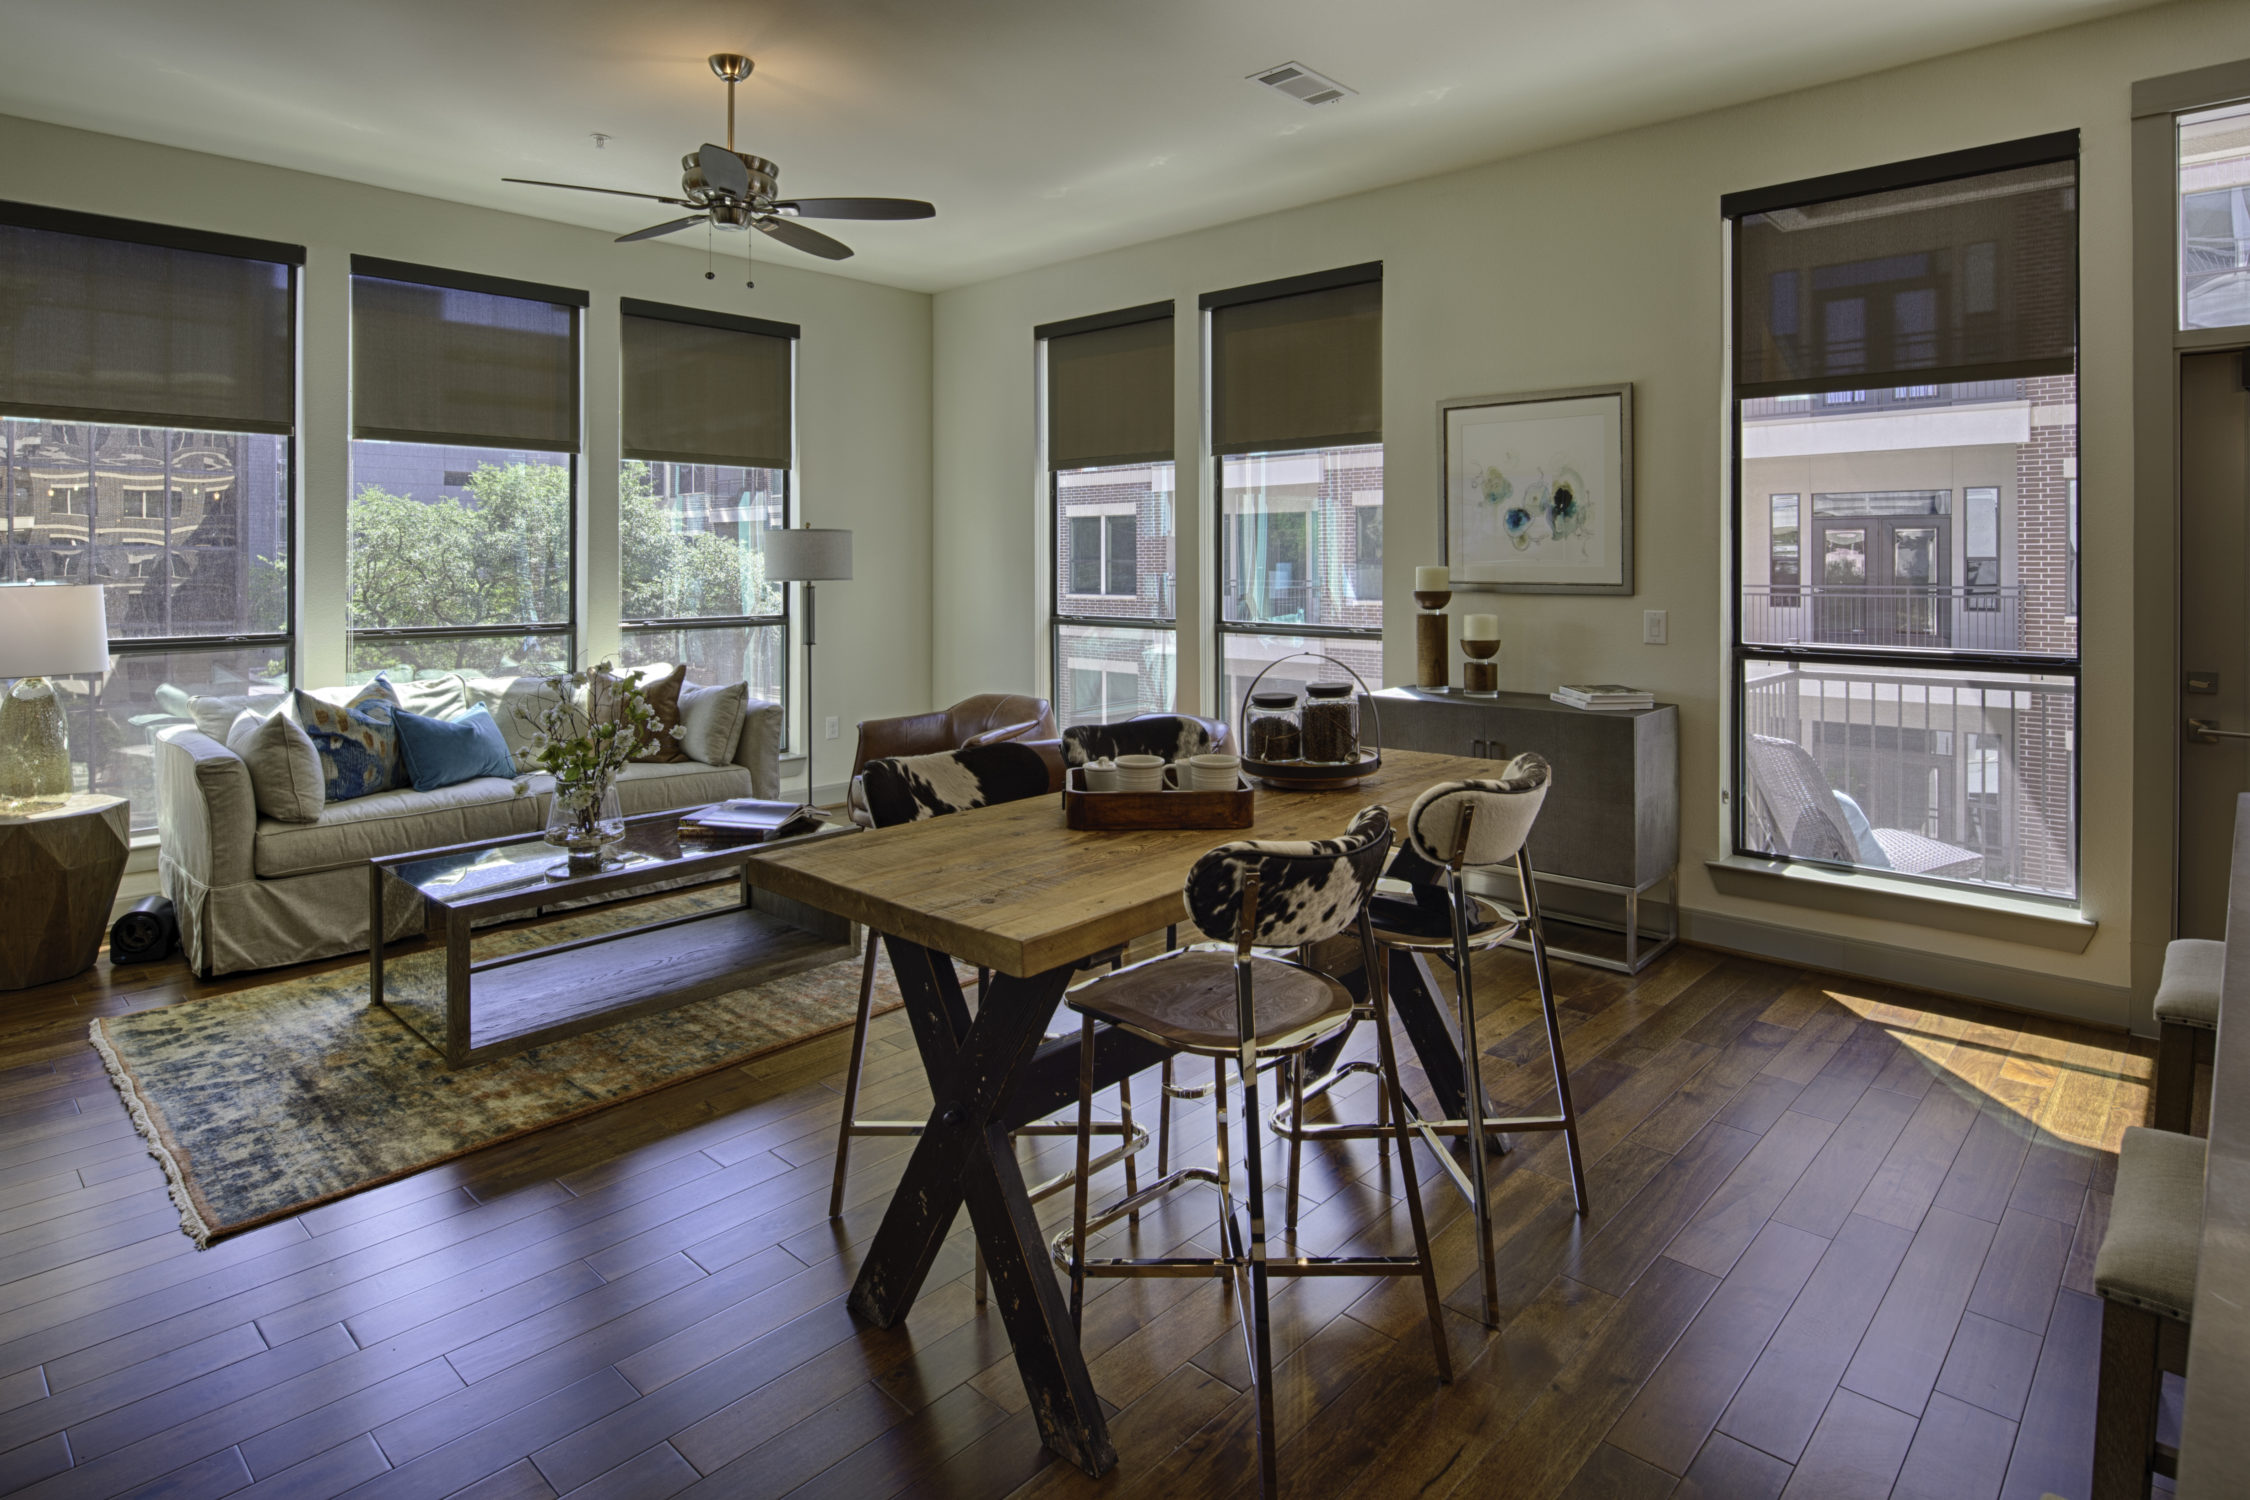 Gallery Luxury Apartments For Rent In Uptown Houston Tx